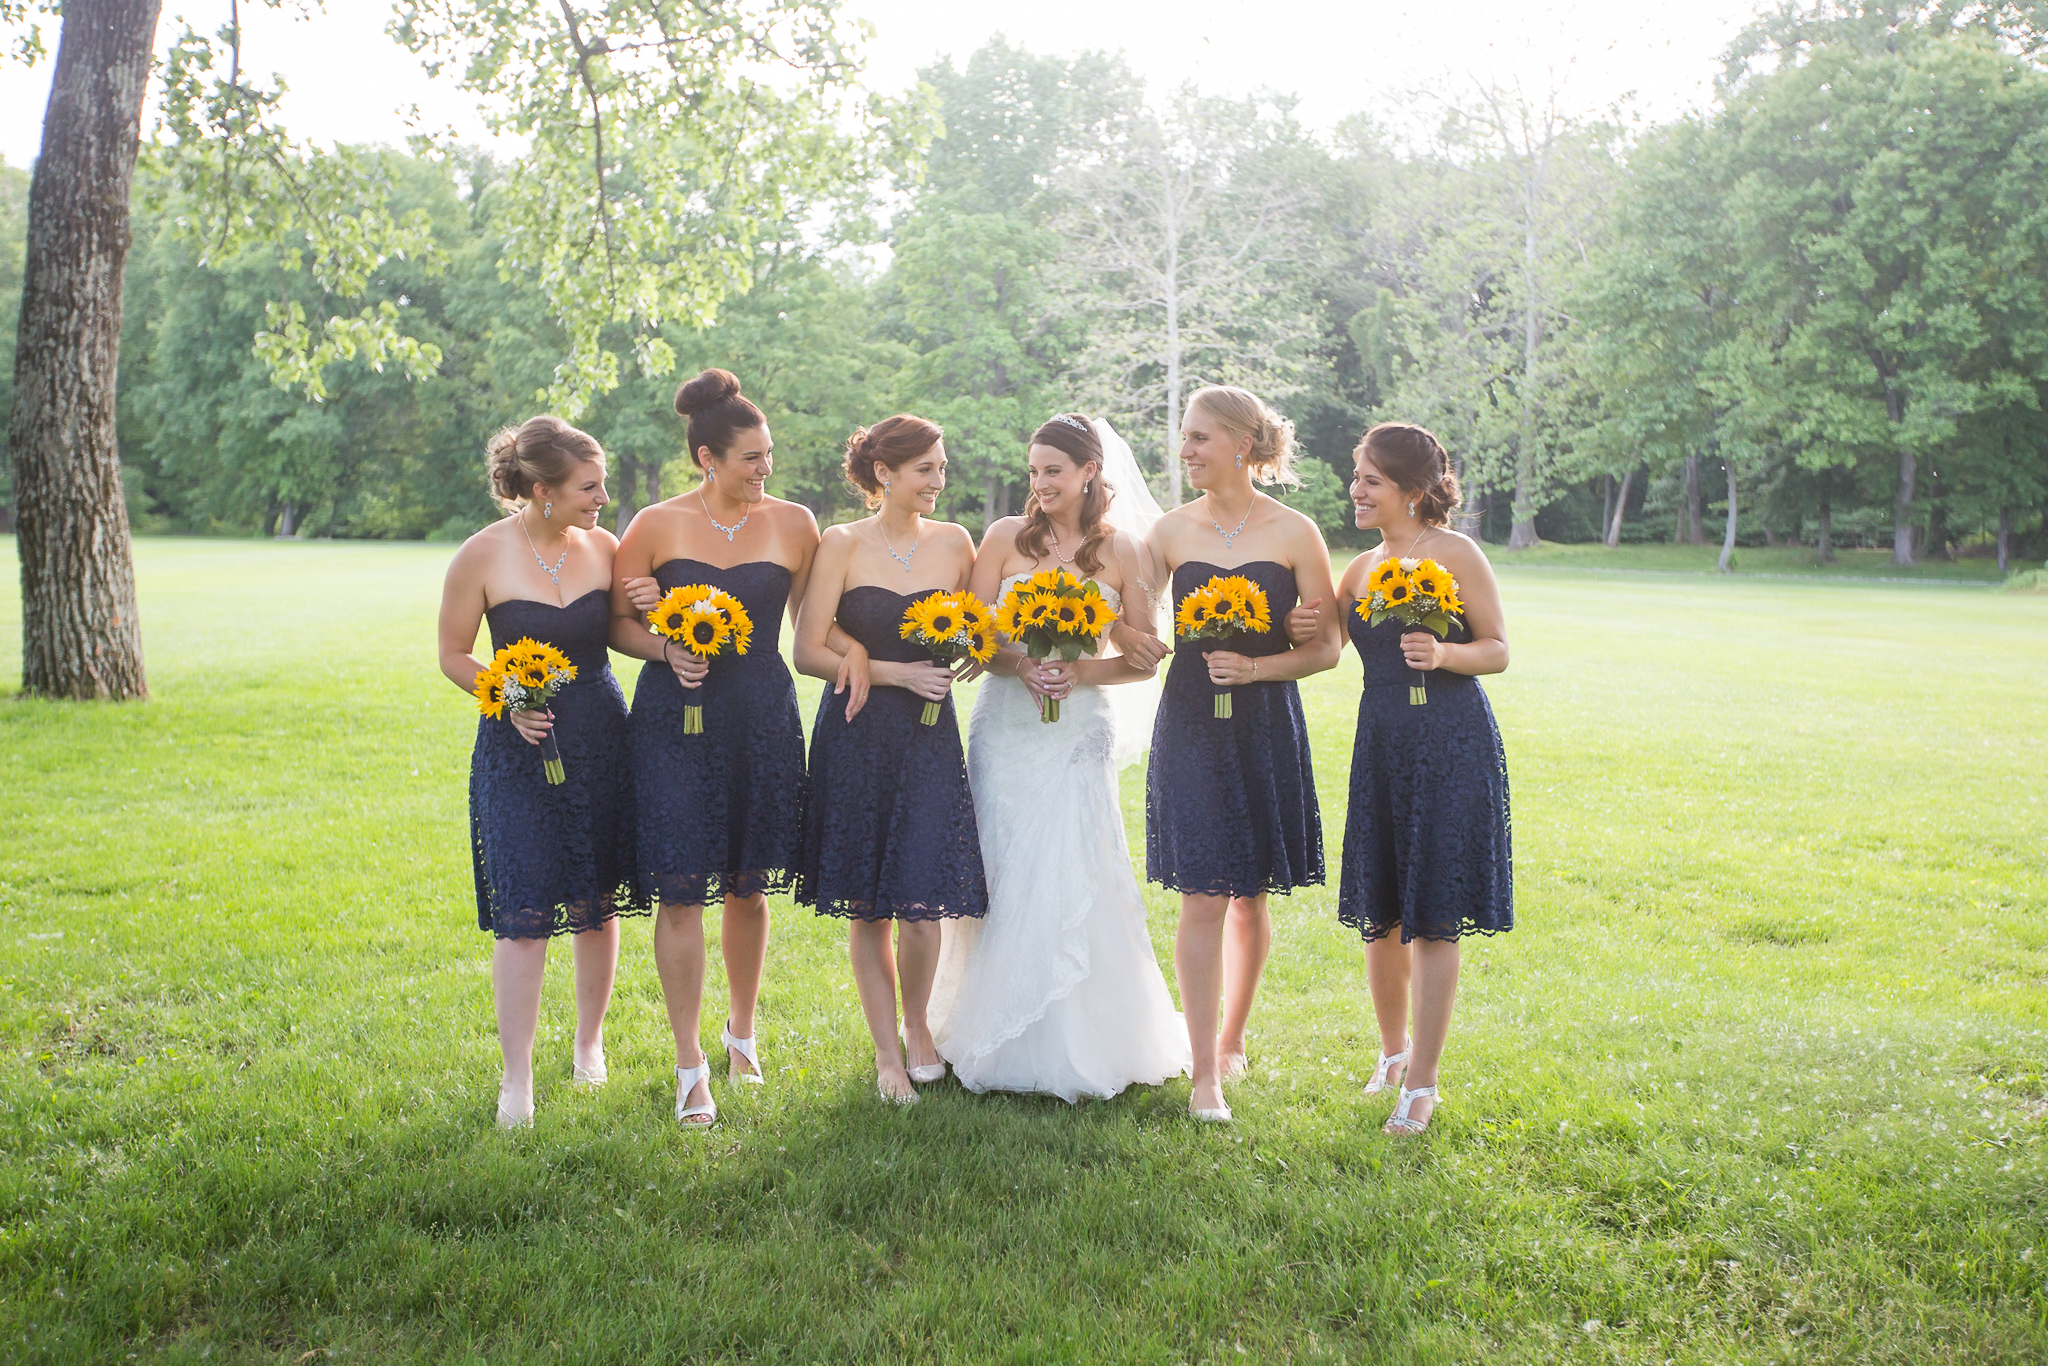 Wedding Planning: Bridesmaids' FAQs | Shaina Lee Photography | CT, NYC + Destination Wedding + Engagement Photographer | Wedding Planning | Wedding Planning for Bridesmaids | Vintage Inspired Wedding in Trumbull, CT | Wedding at Tashua Knolls Banquet Facility | Twin Brooks Park Wedding Photos